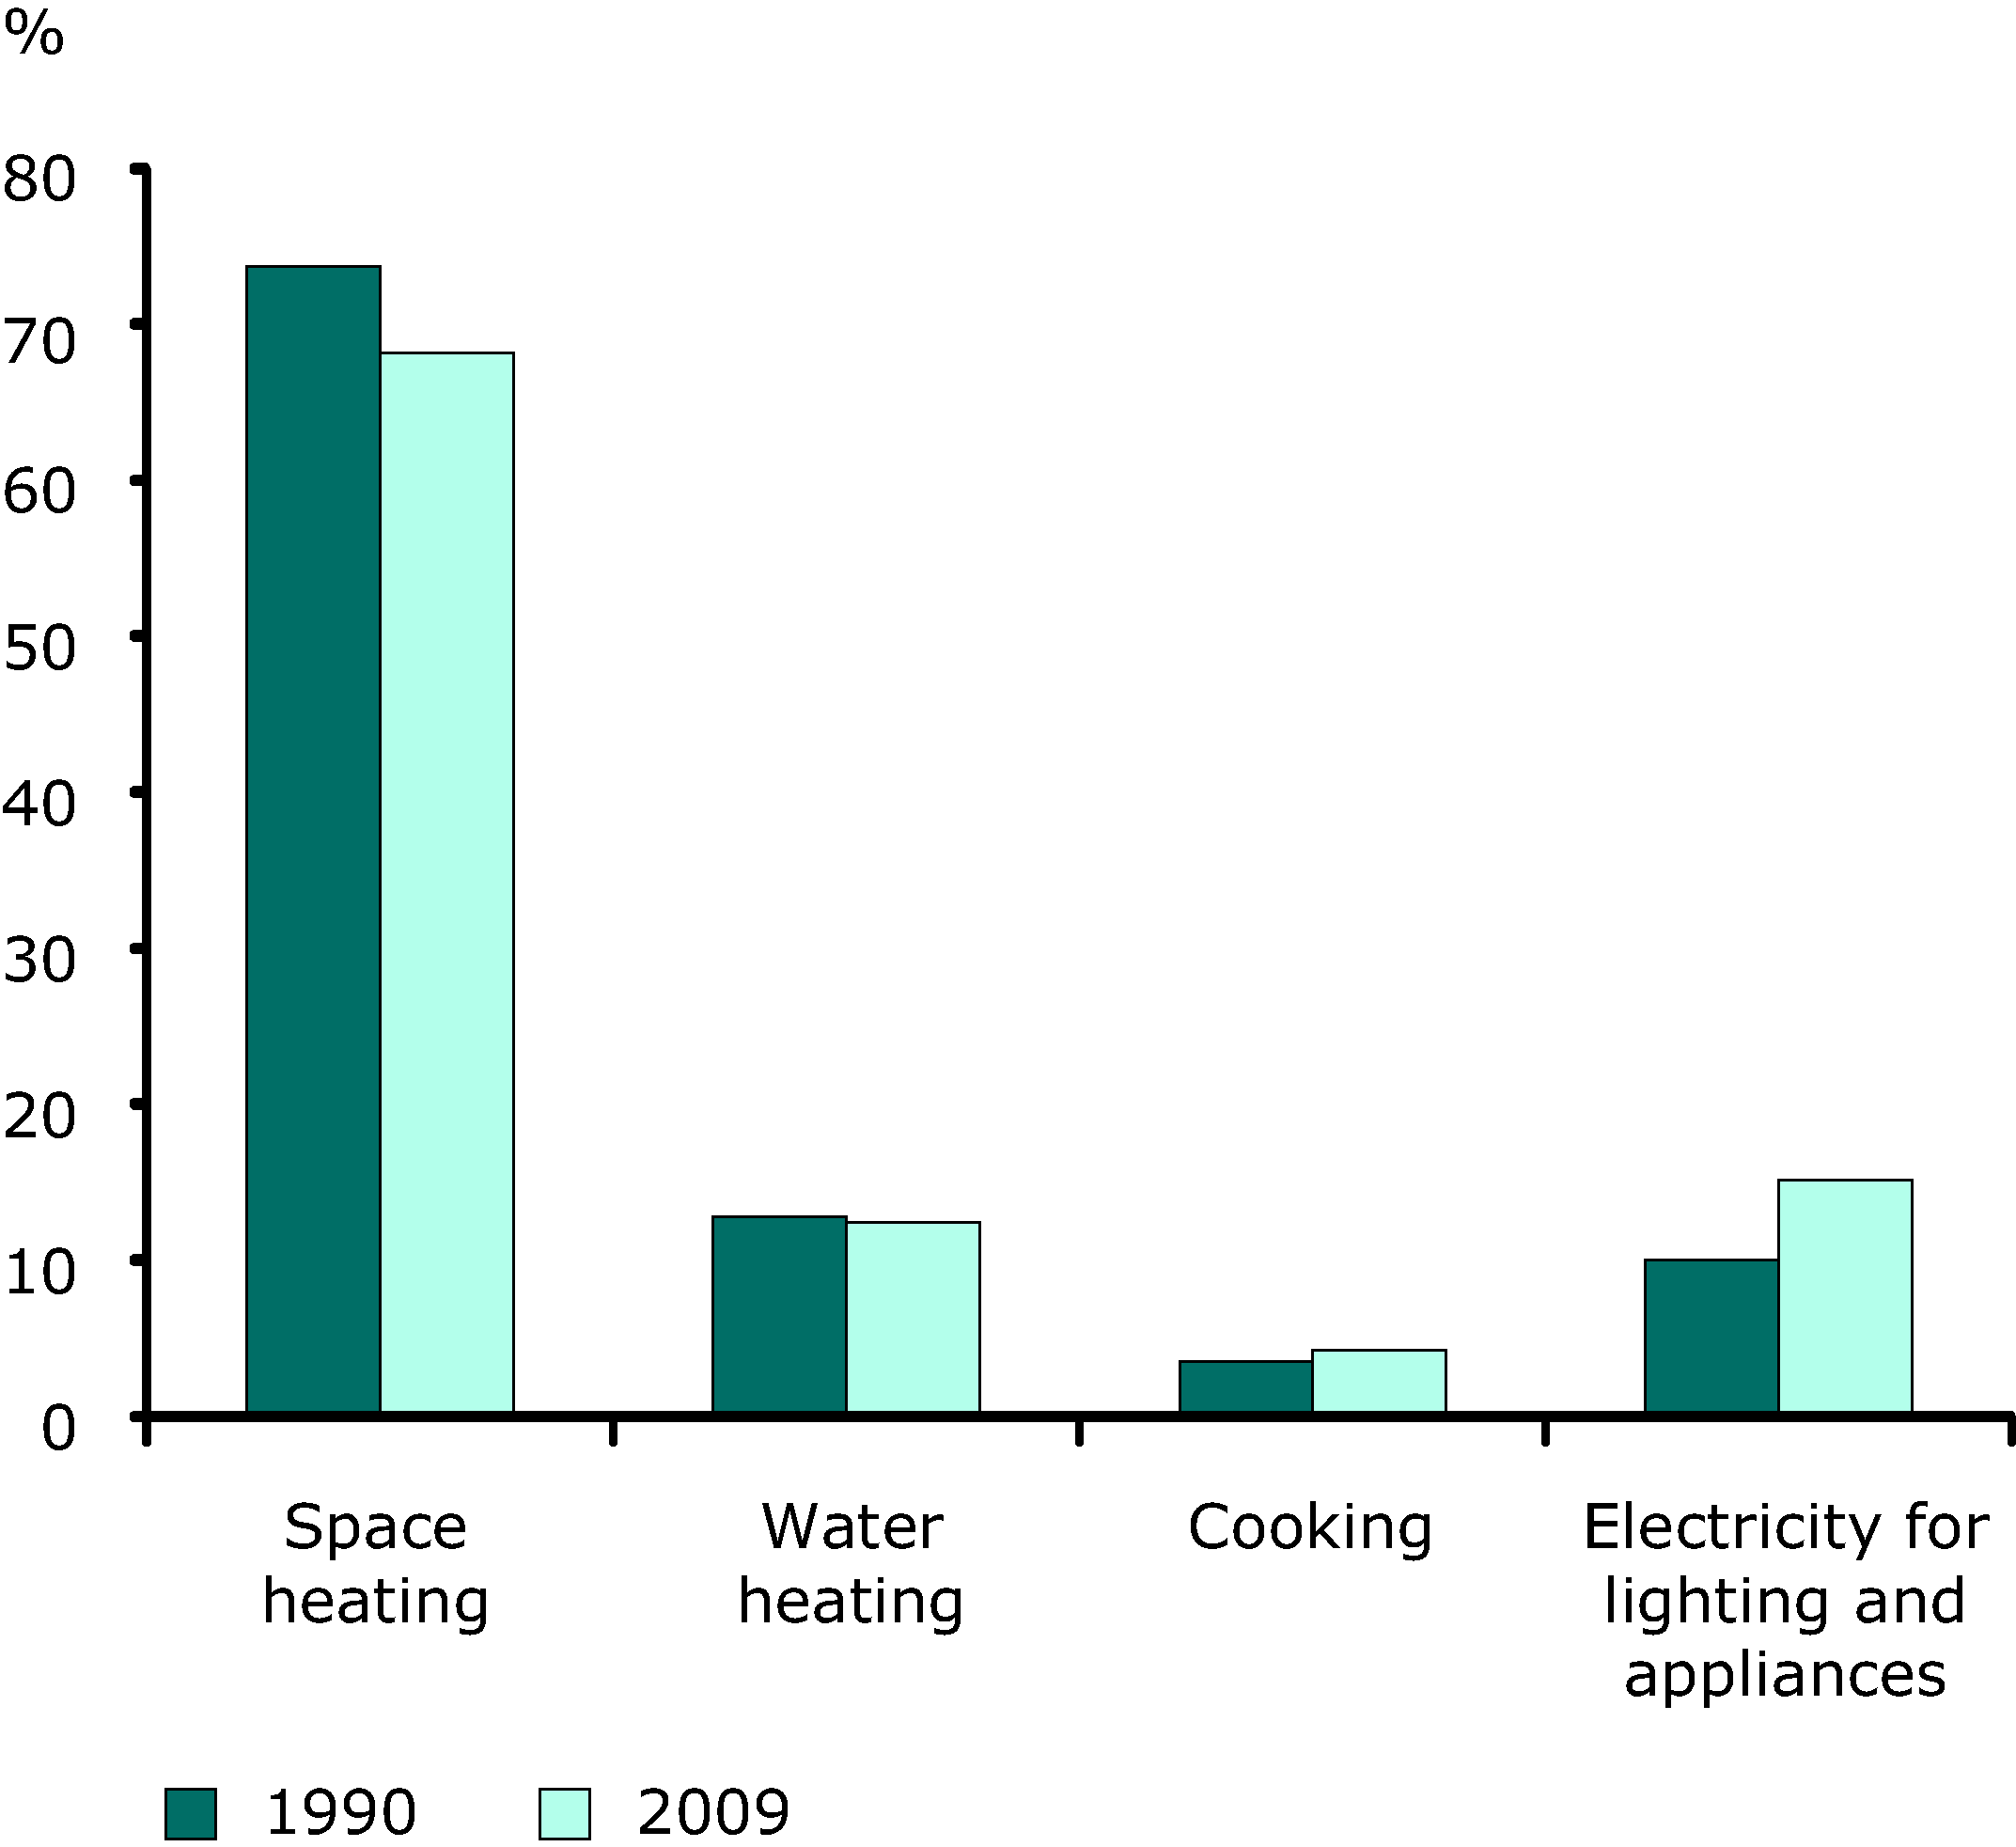 Household energy consumption by end-use in the EU-27